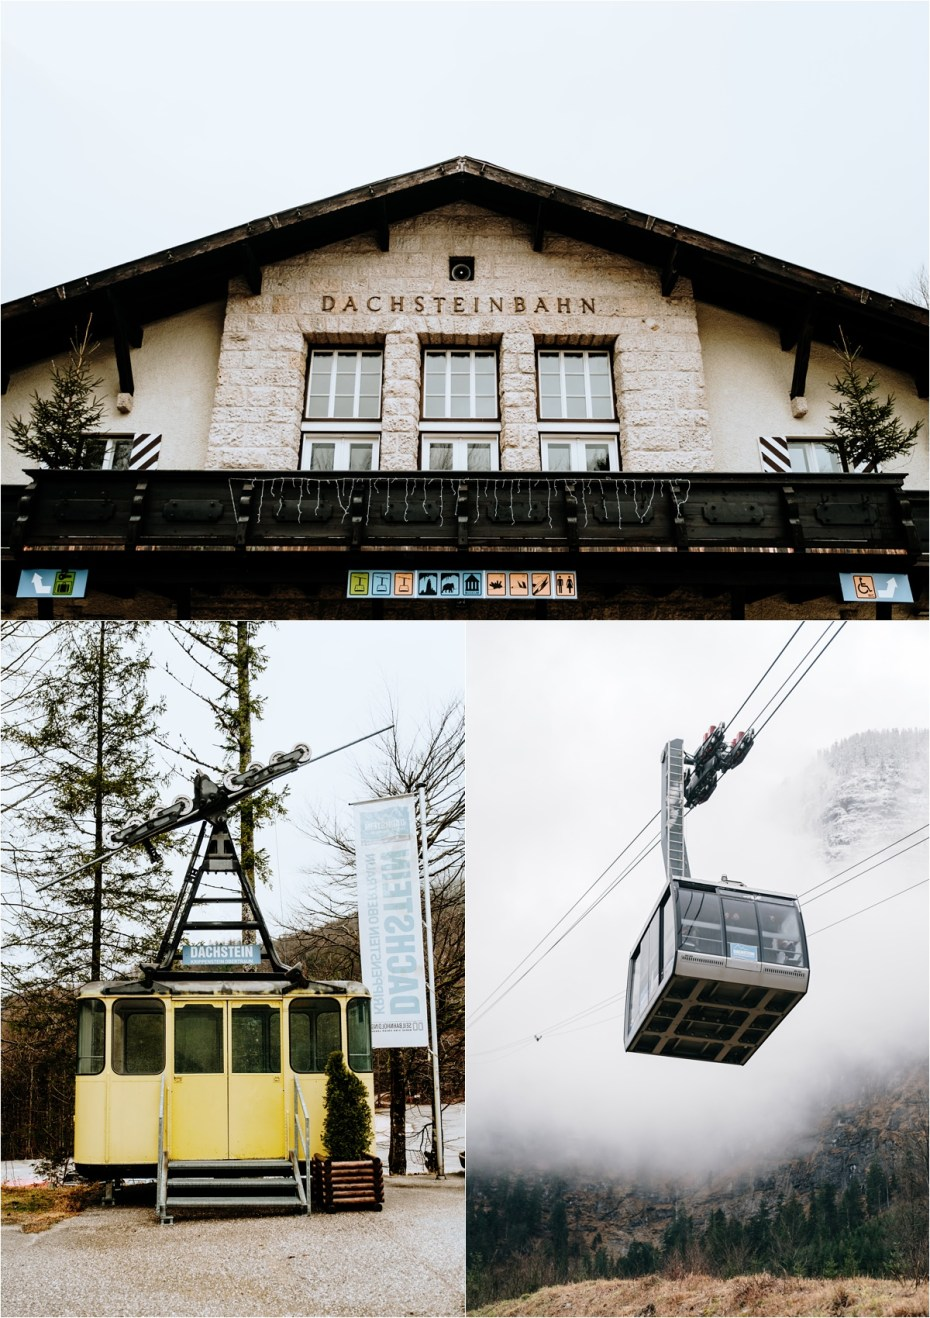 Dachsteinbahn cable car in Obertraun. Photos by Wild Connections Photography